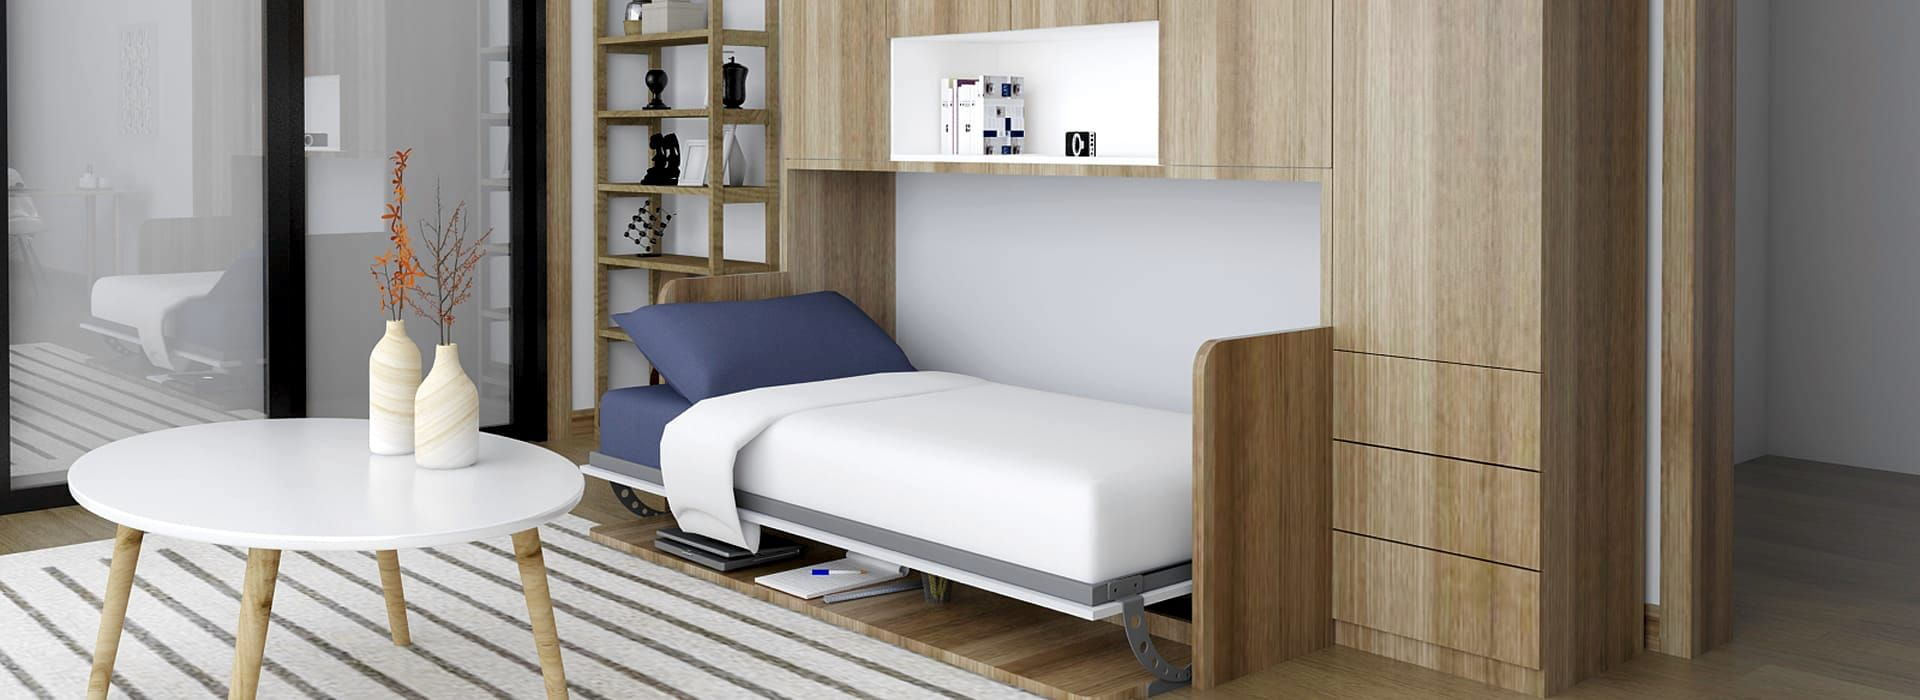 Wall Beds, Murphy Beds & Space Saving Furniture by